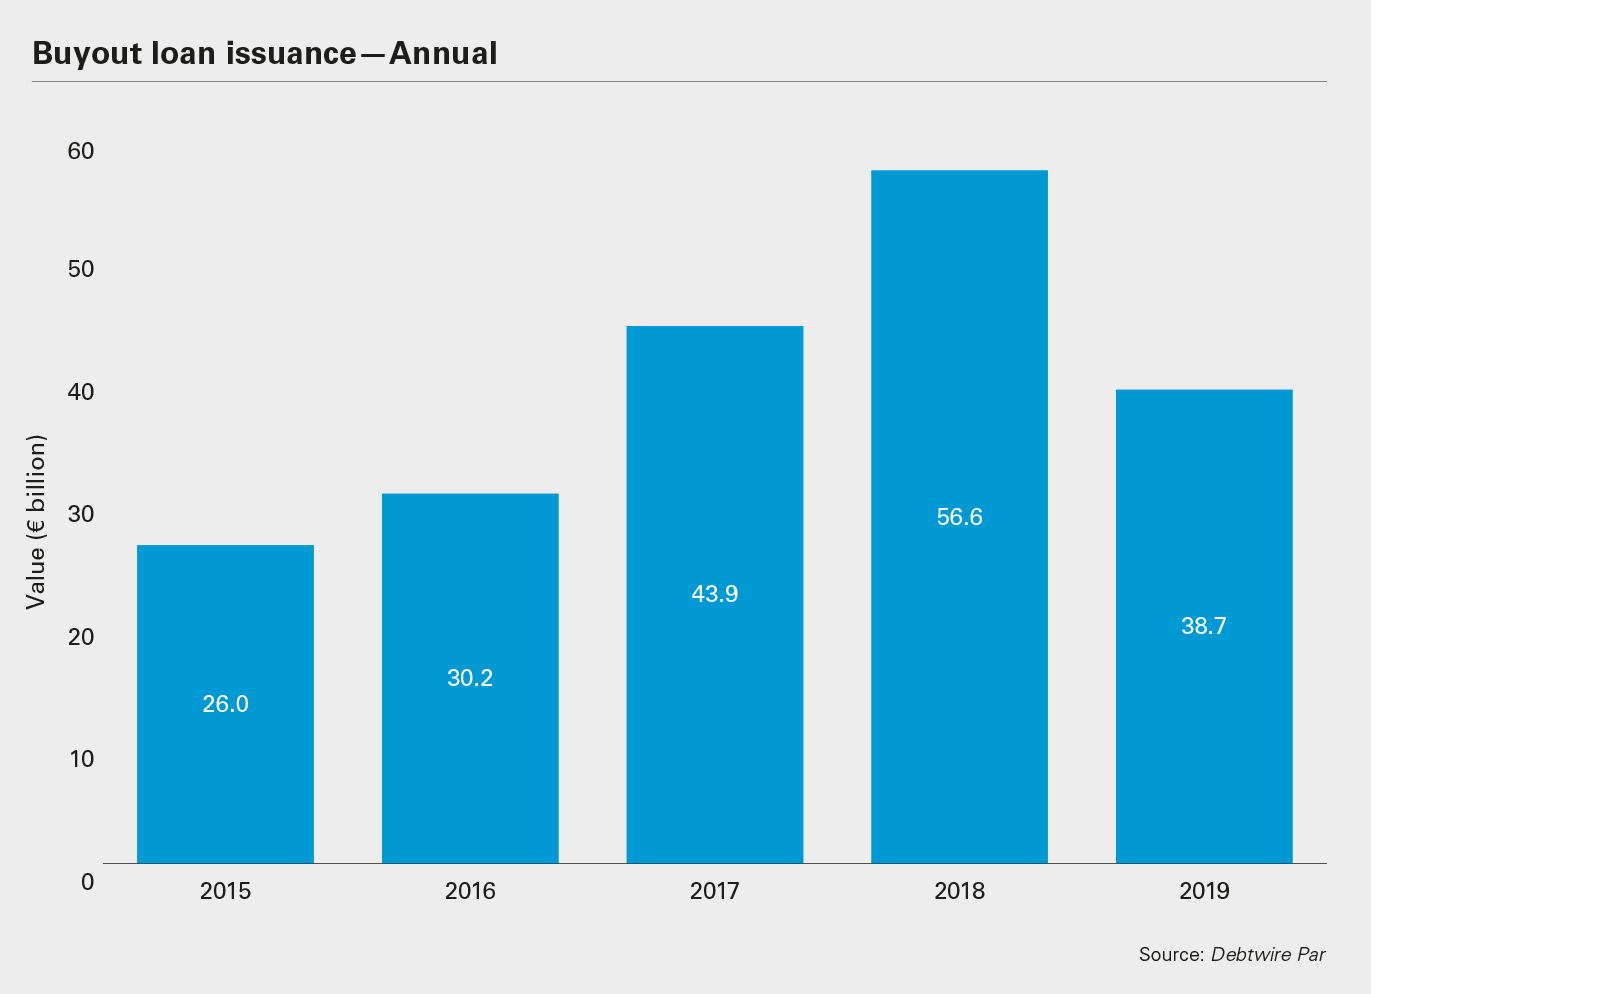 Buyout loan issuance—Annual chart